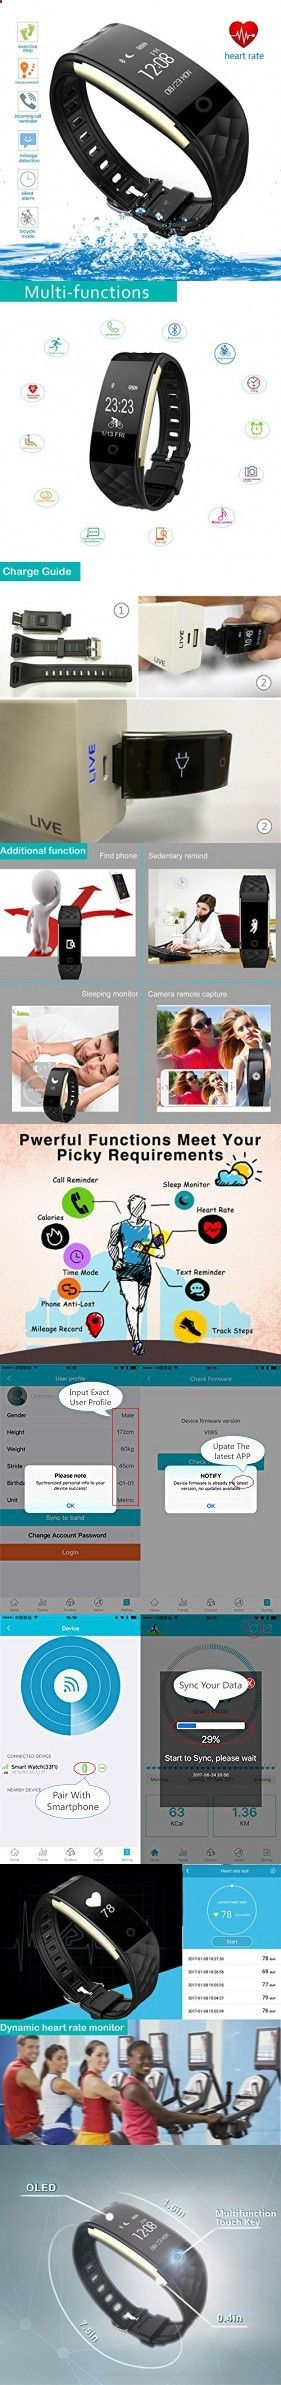 Activity Bracelets Fitness - Fitness Tracker, Health Sleep Activity Tracker, Upgraded Watch Wristband with Heart Rate Monitor, Wireless Bluetooth Smart Bracelet for Outdoor Running Walking, for iPhone/Android phone - The benefits of wearing these smart bracelets are not only in your comfort, but also in that they are able to control all your physical progress